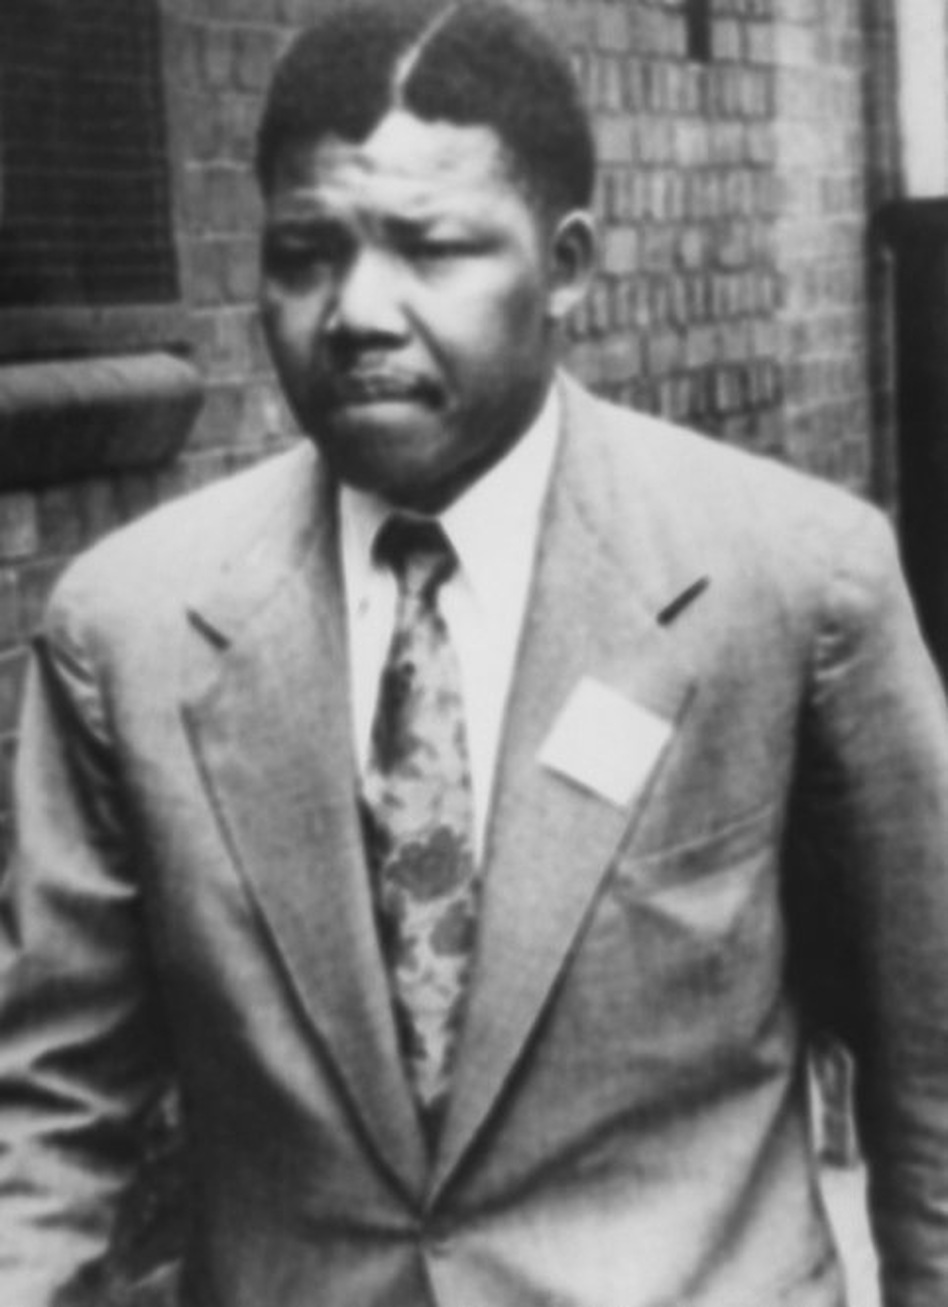 Former President of South Africa and African National Congress leader, Nelson Mandela worked most of his life to end apartheid and advocate for human rights.